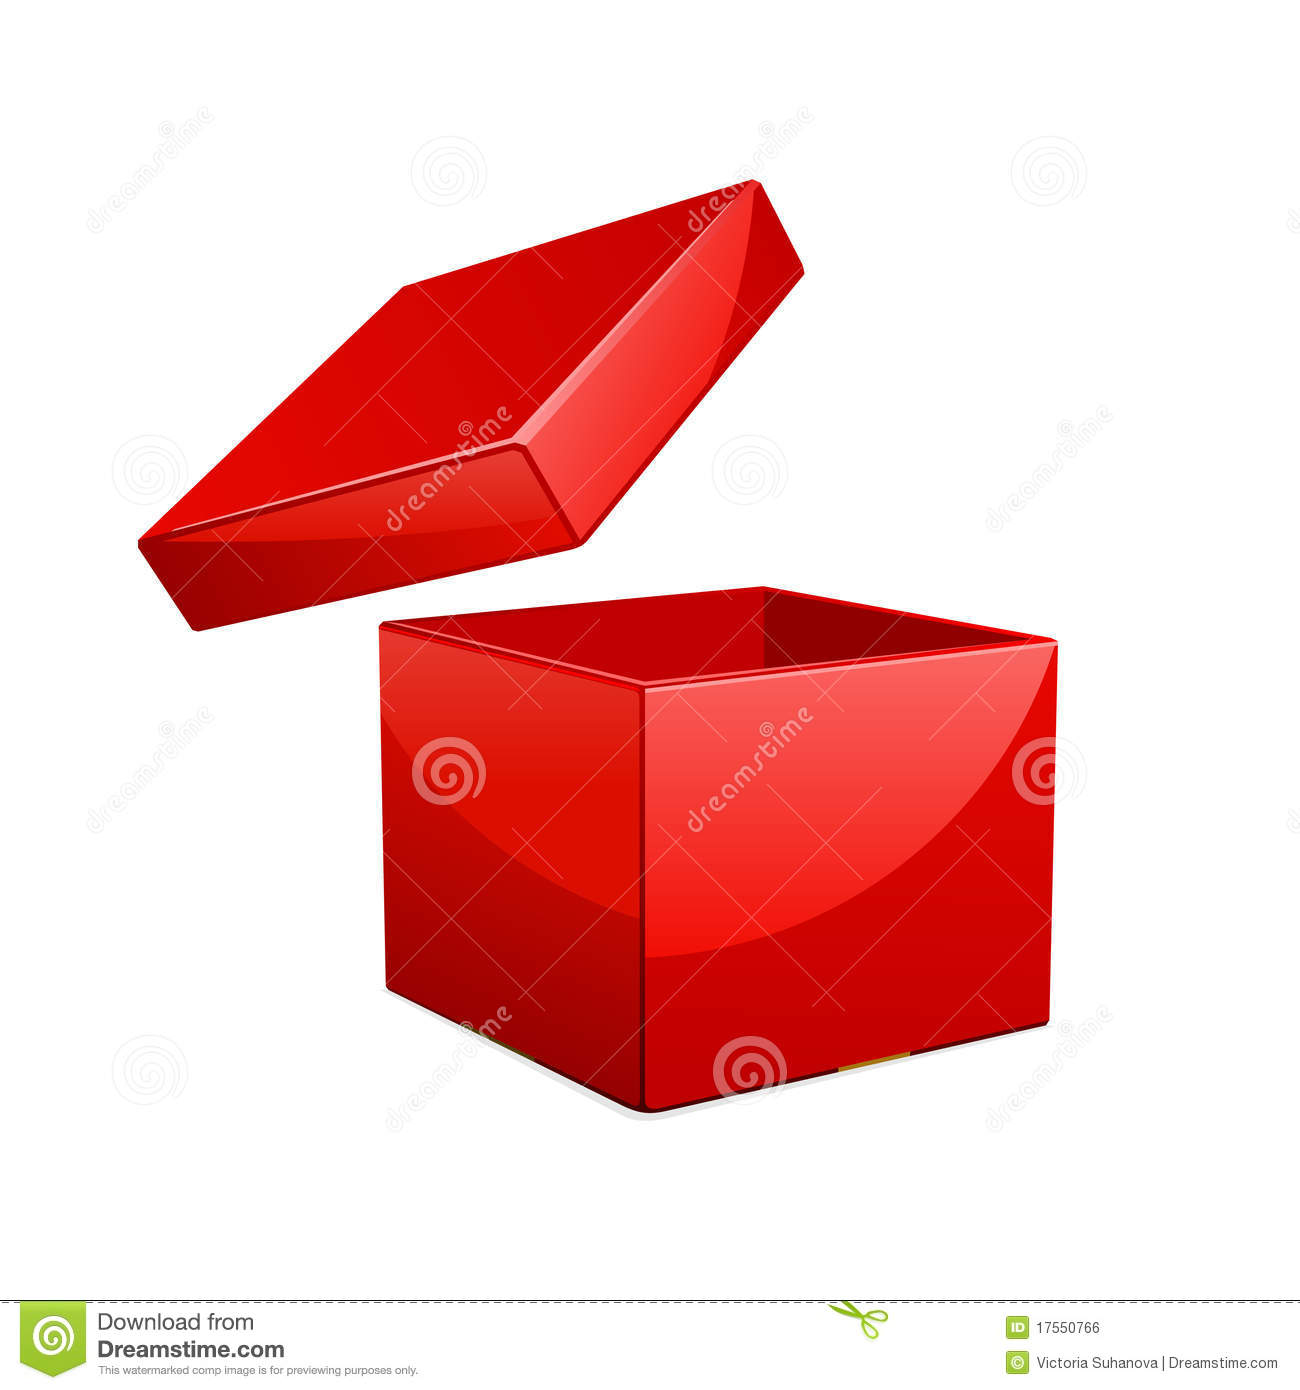 Open Red Gift Box Royalty Free Stock Image - Image: 17550766